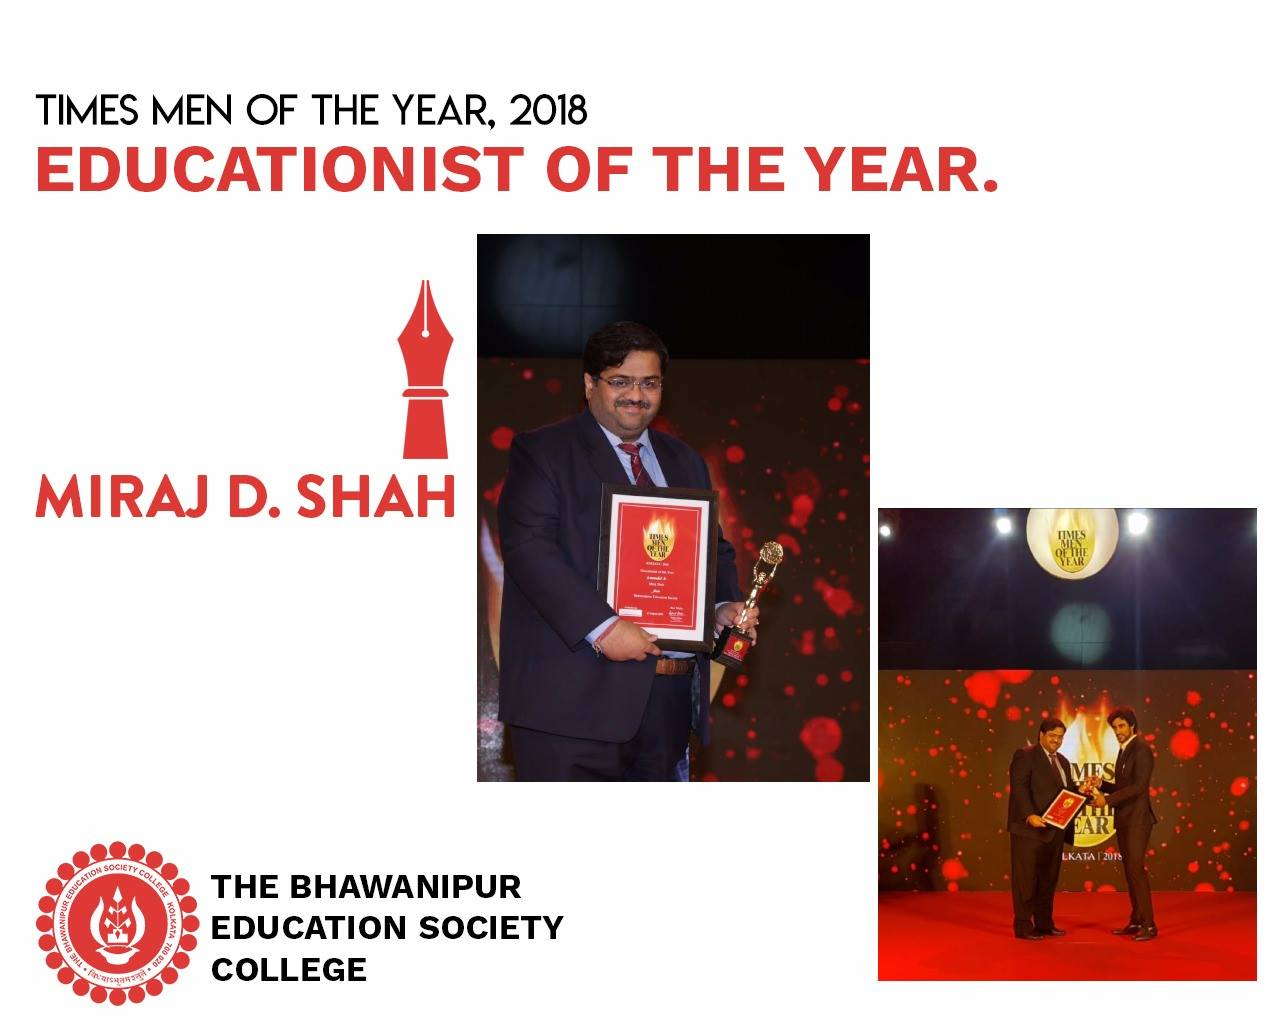 Times Men of the Year-Educationist of the Year-2018